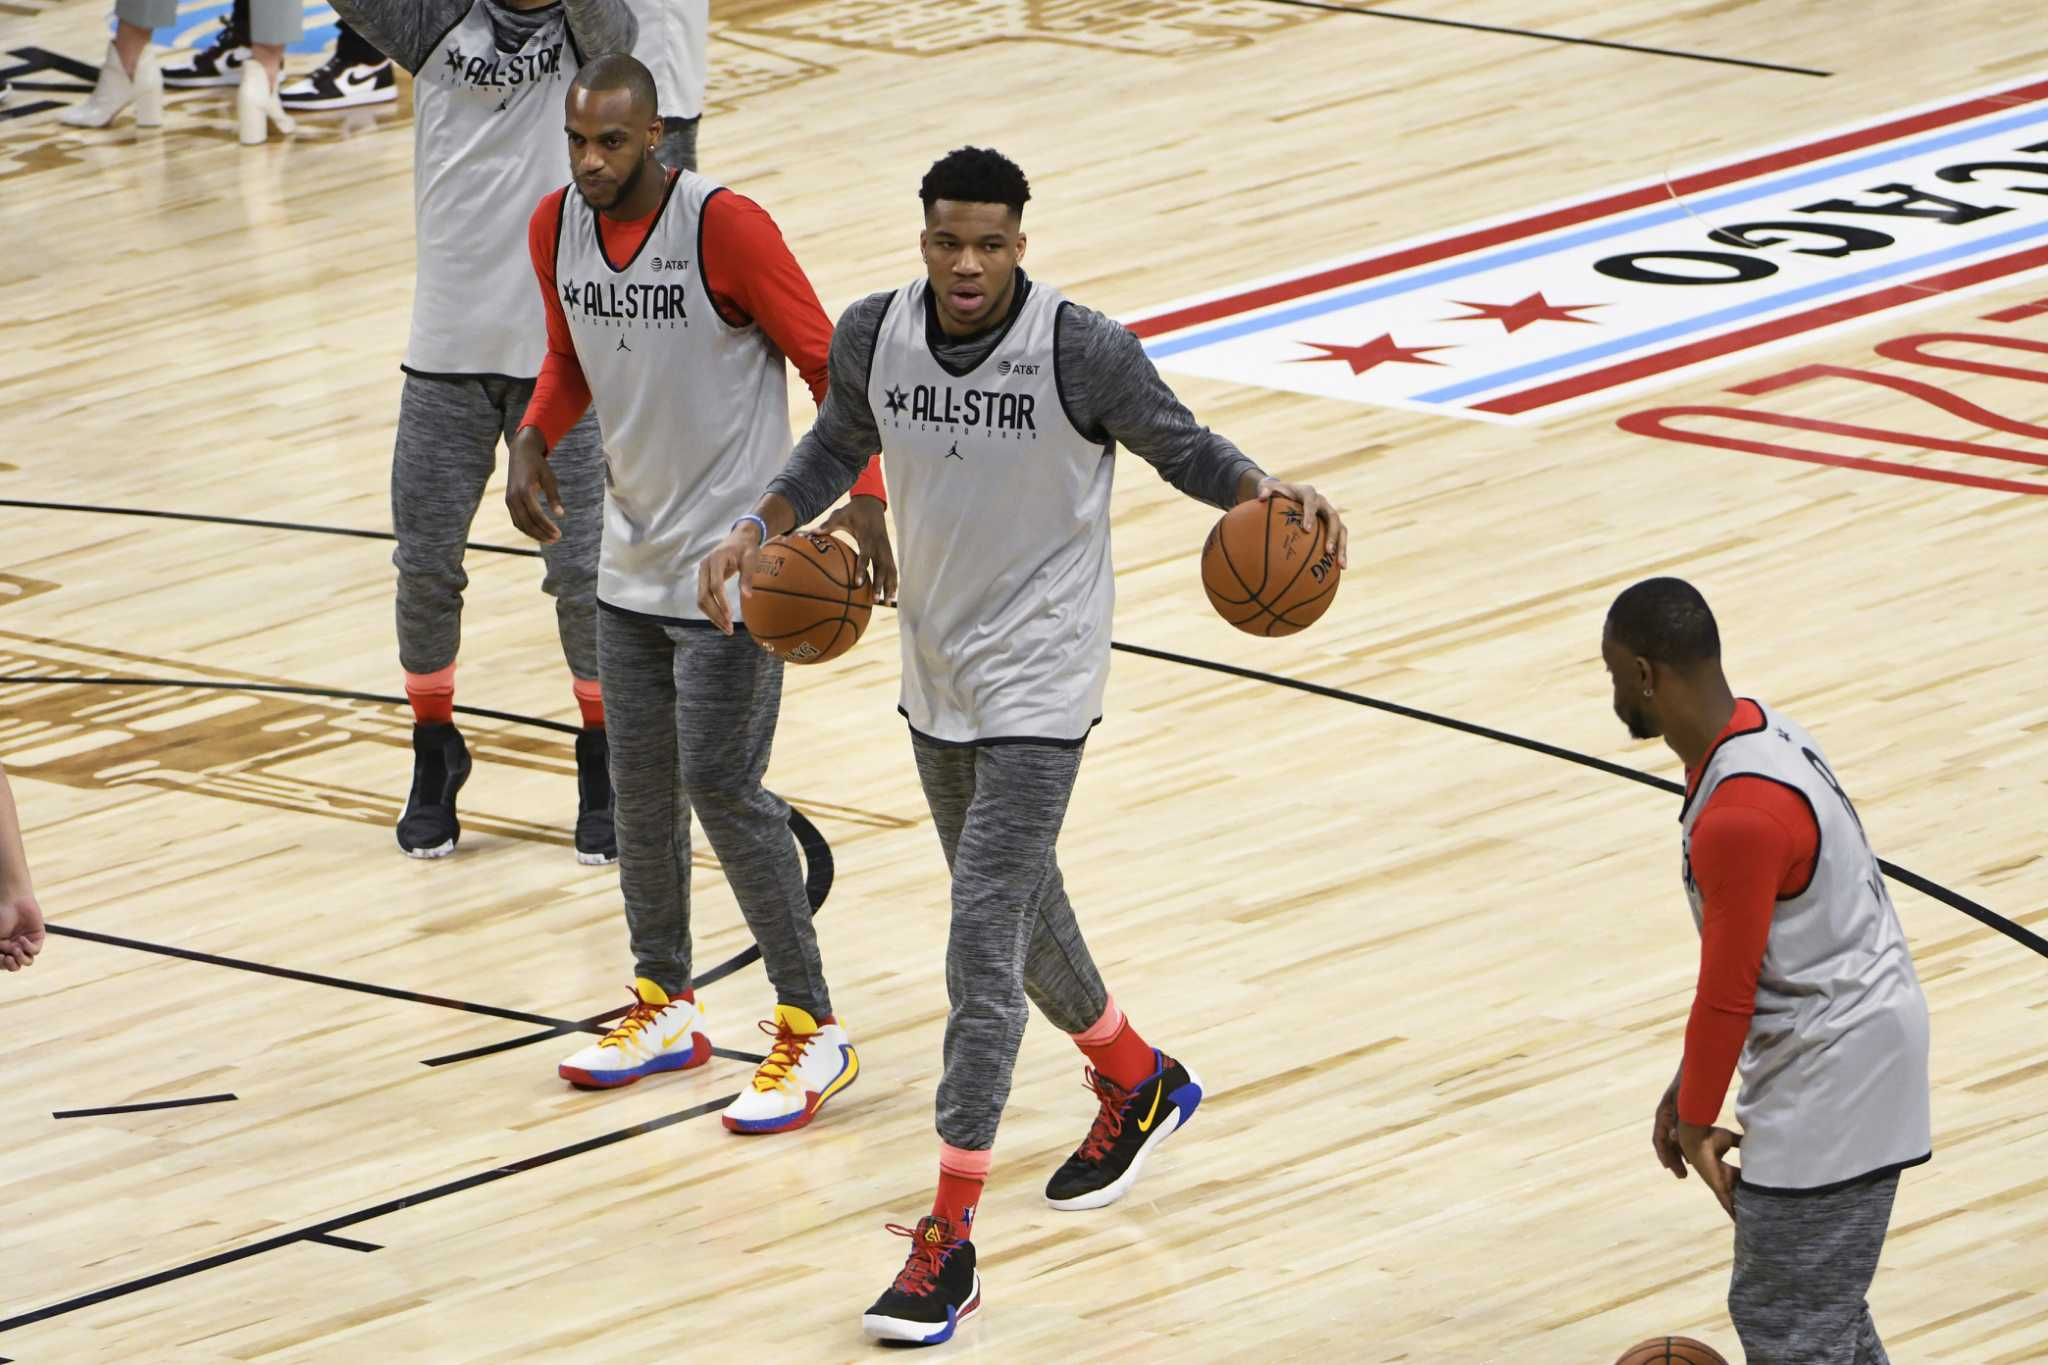 How to find a star in today's NBA